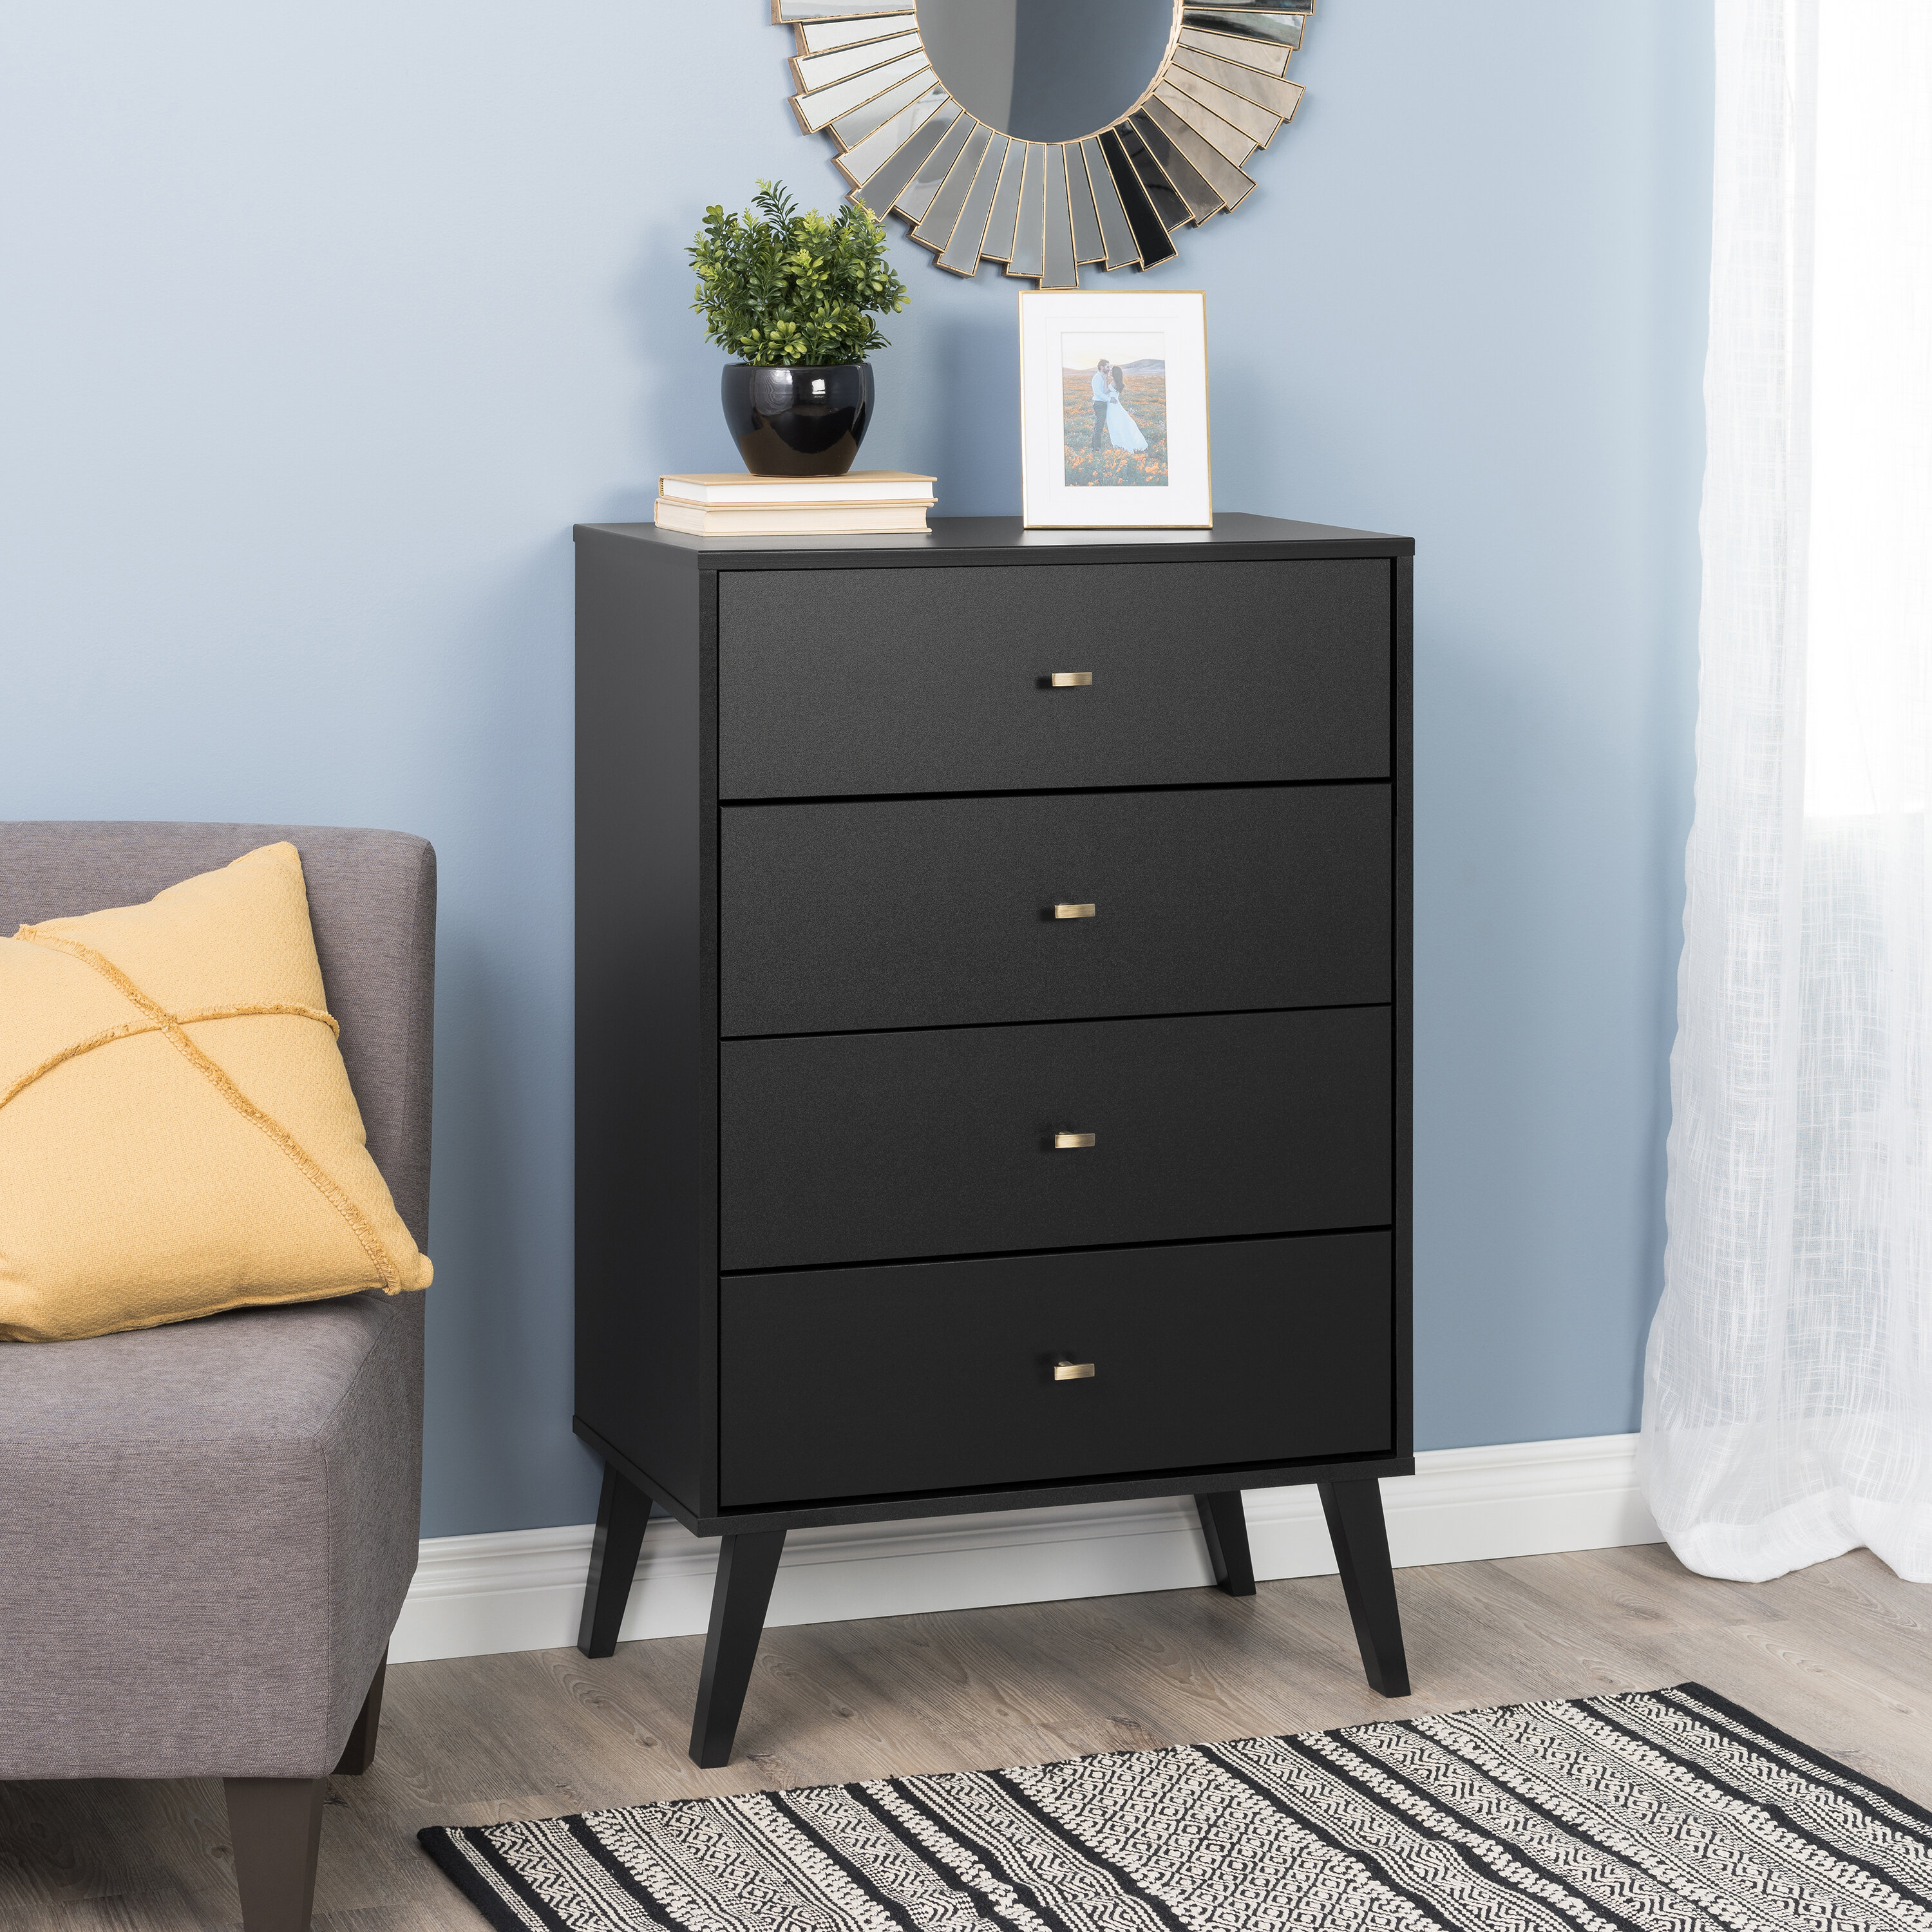 Image of: Black Mid Century Modern Dressers Chests You Ll Love In 2020 Wayfair